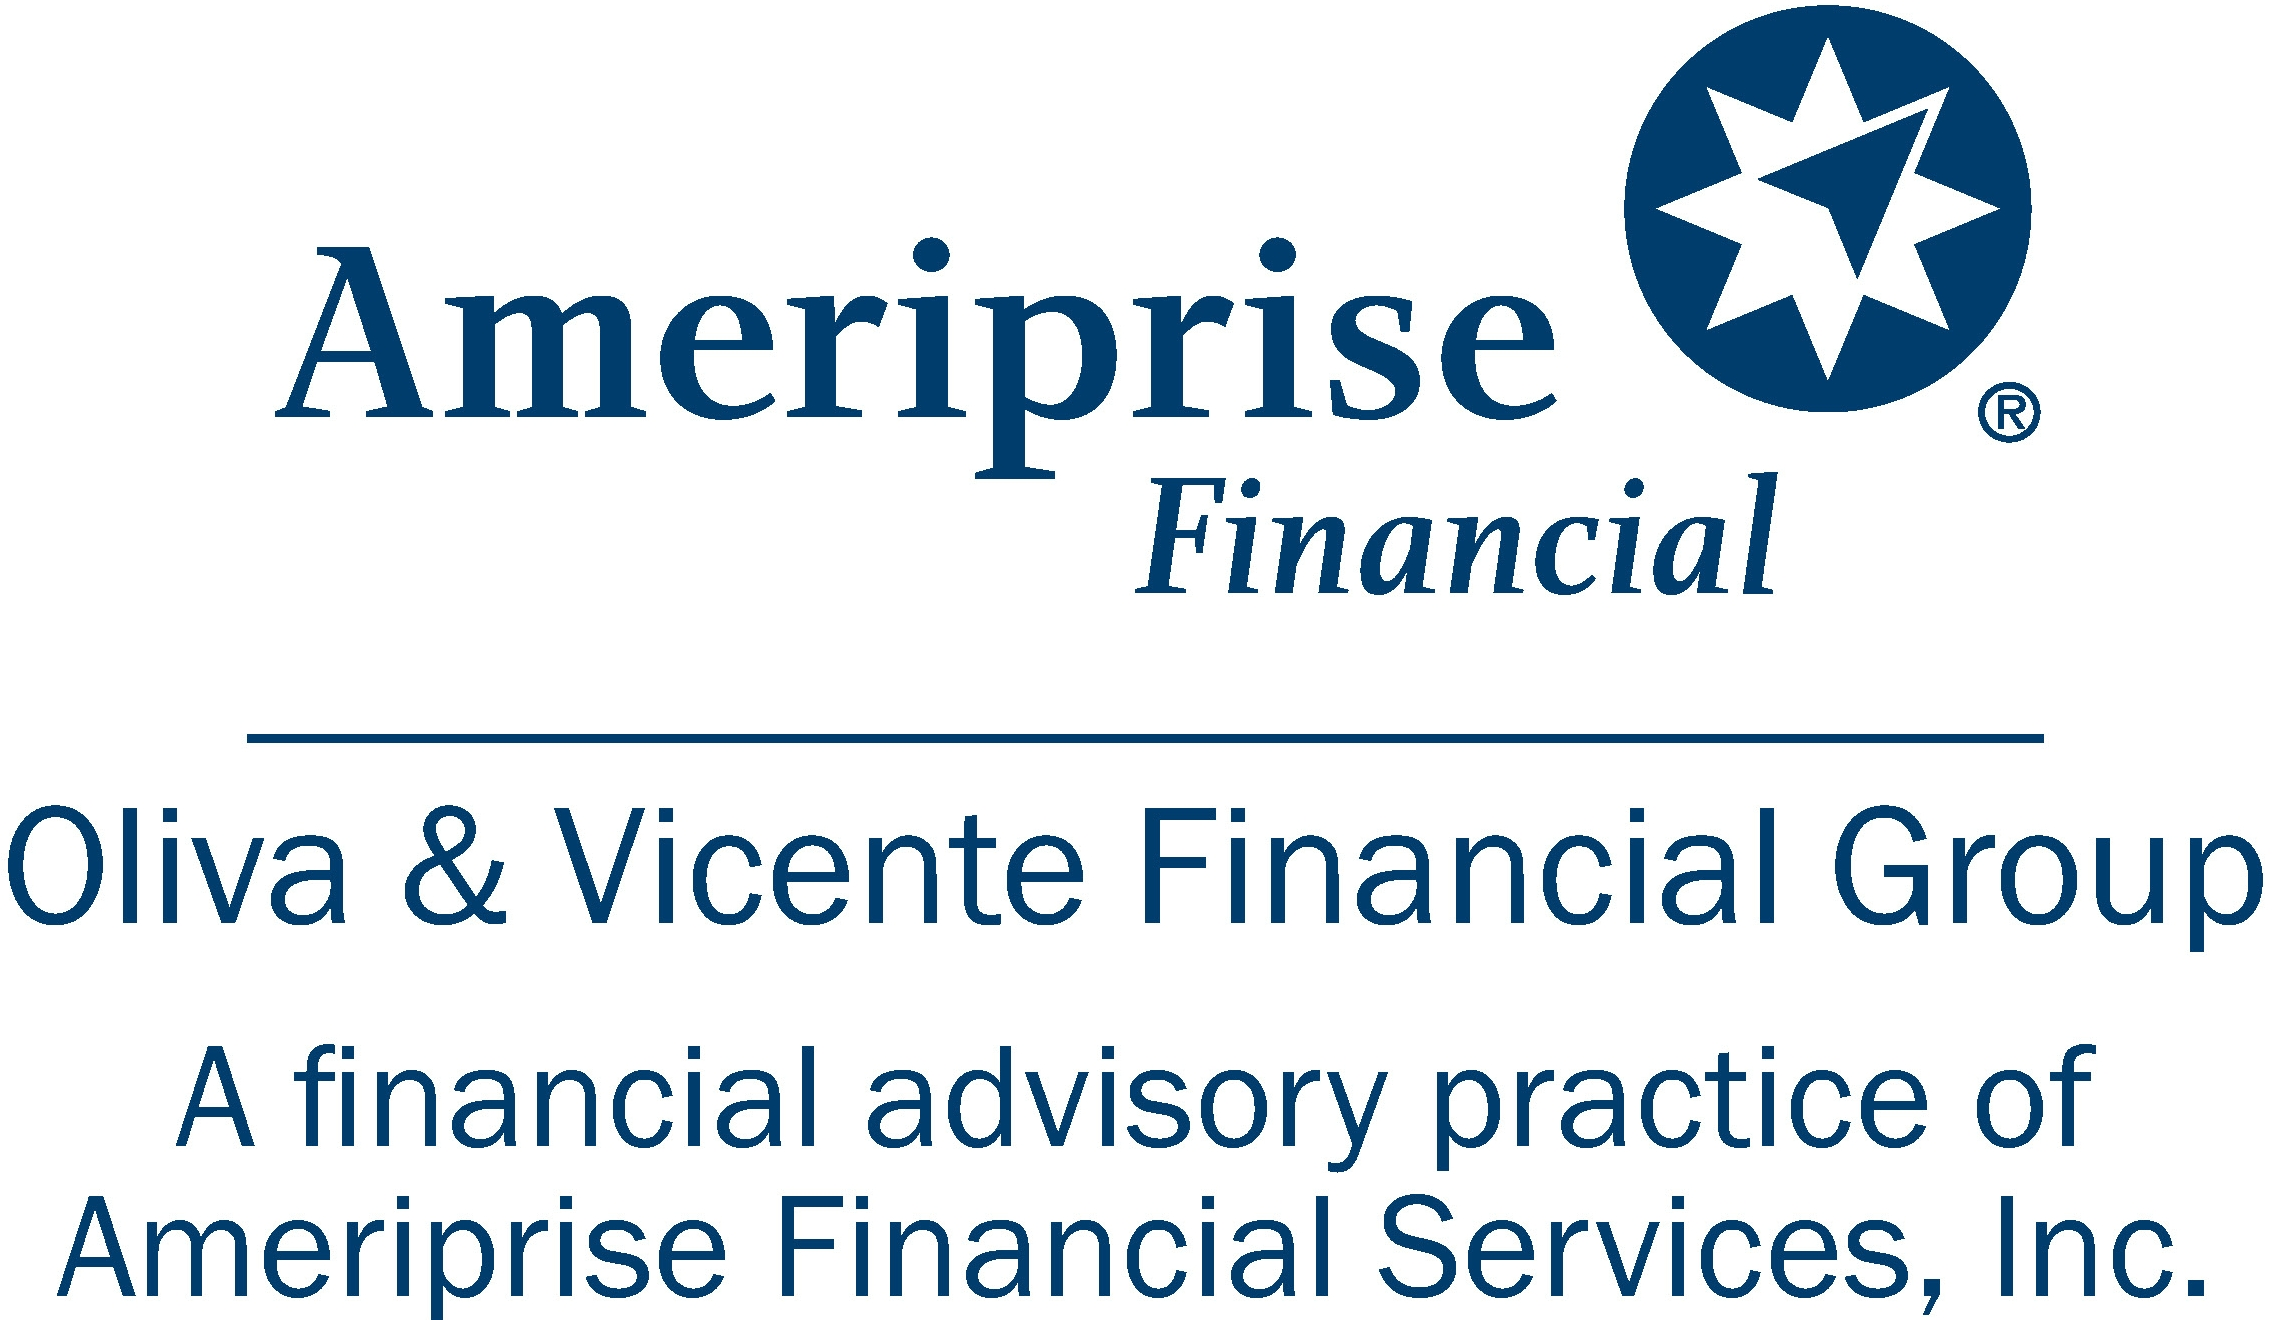 Oliva & Vicente Financial Group